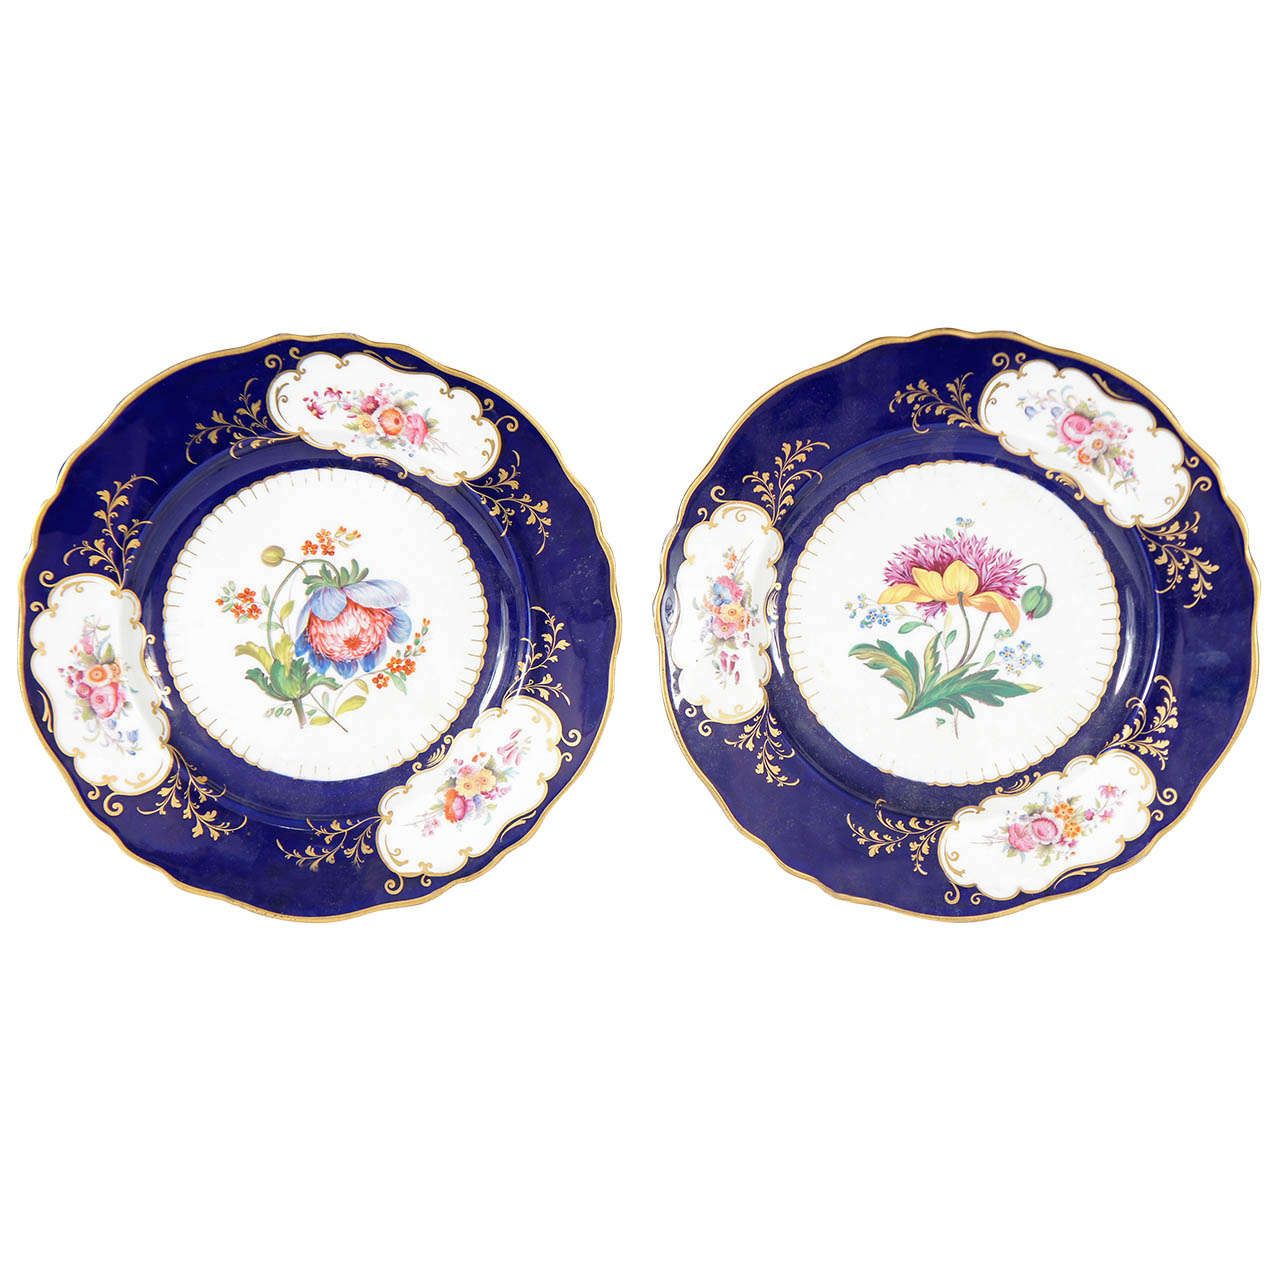 Pair of Similar Ridgway Porcelain Service Plates For Sale